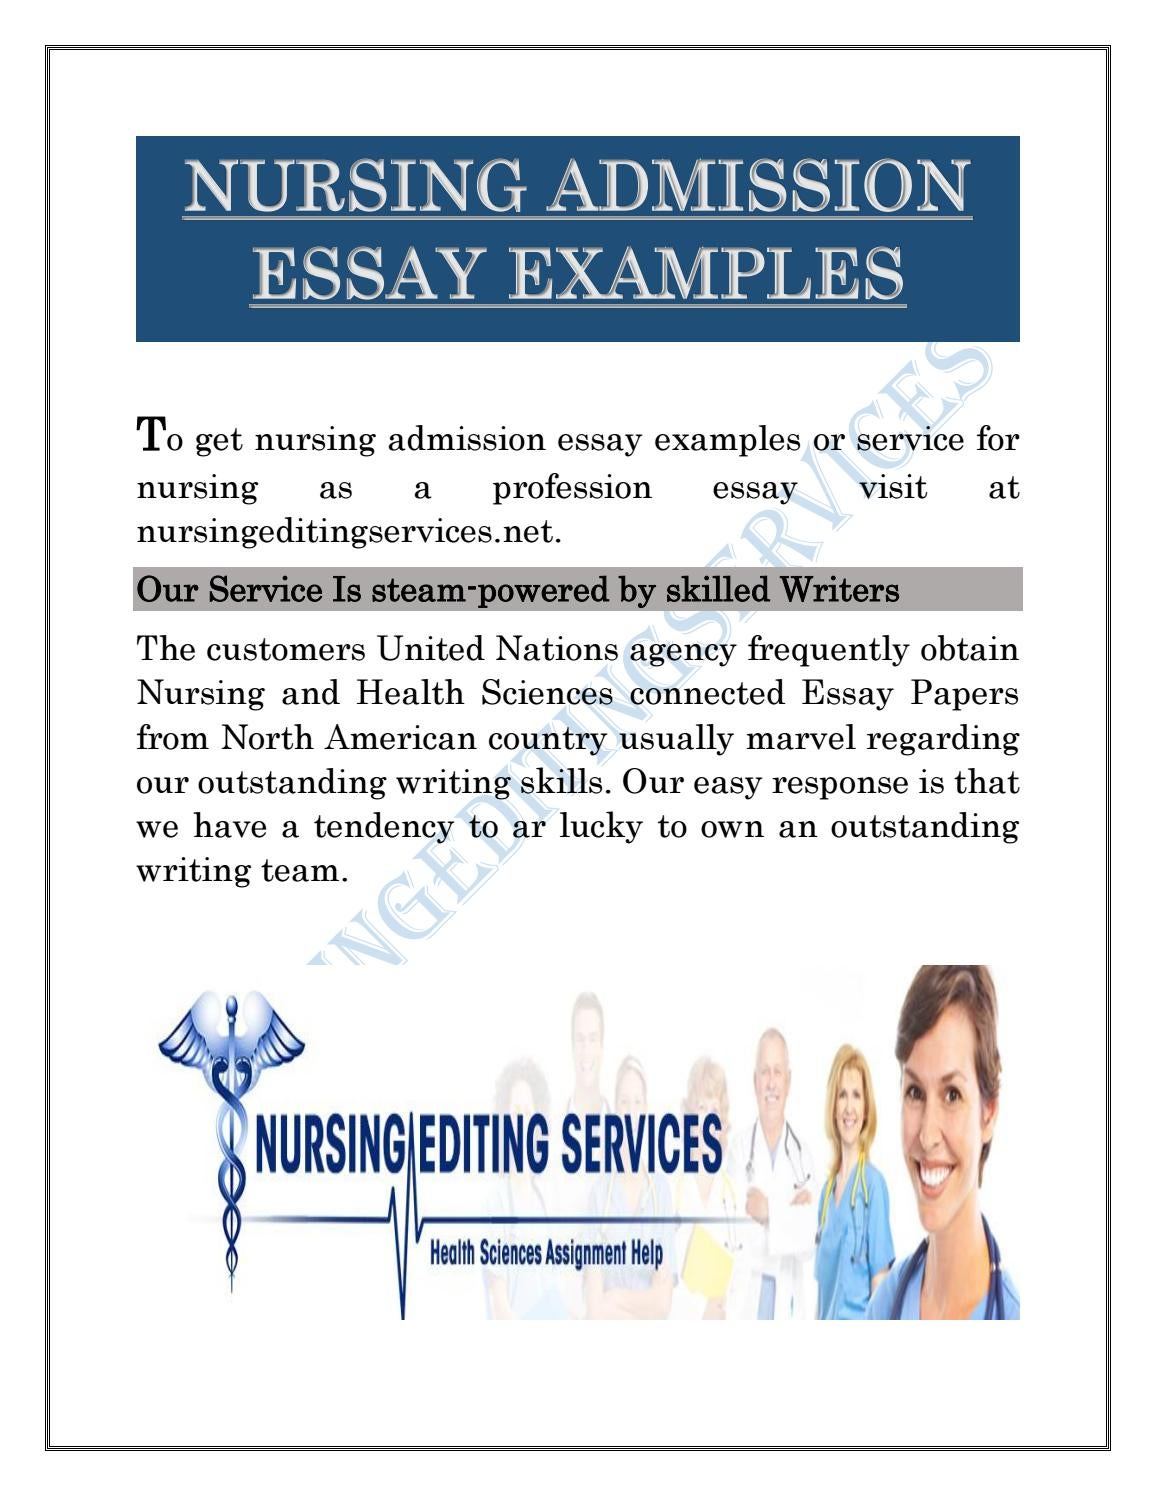 Nursing essay samples